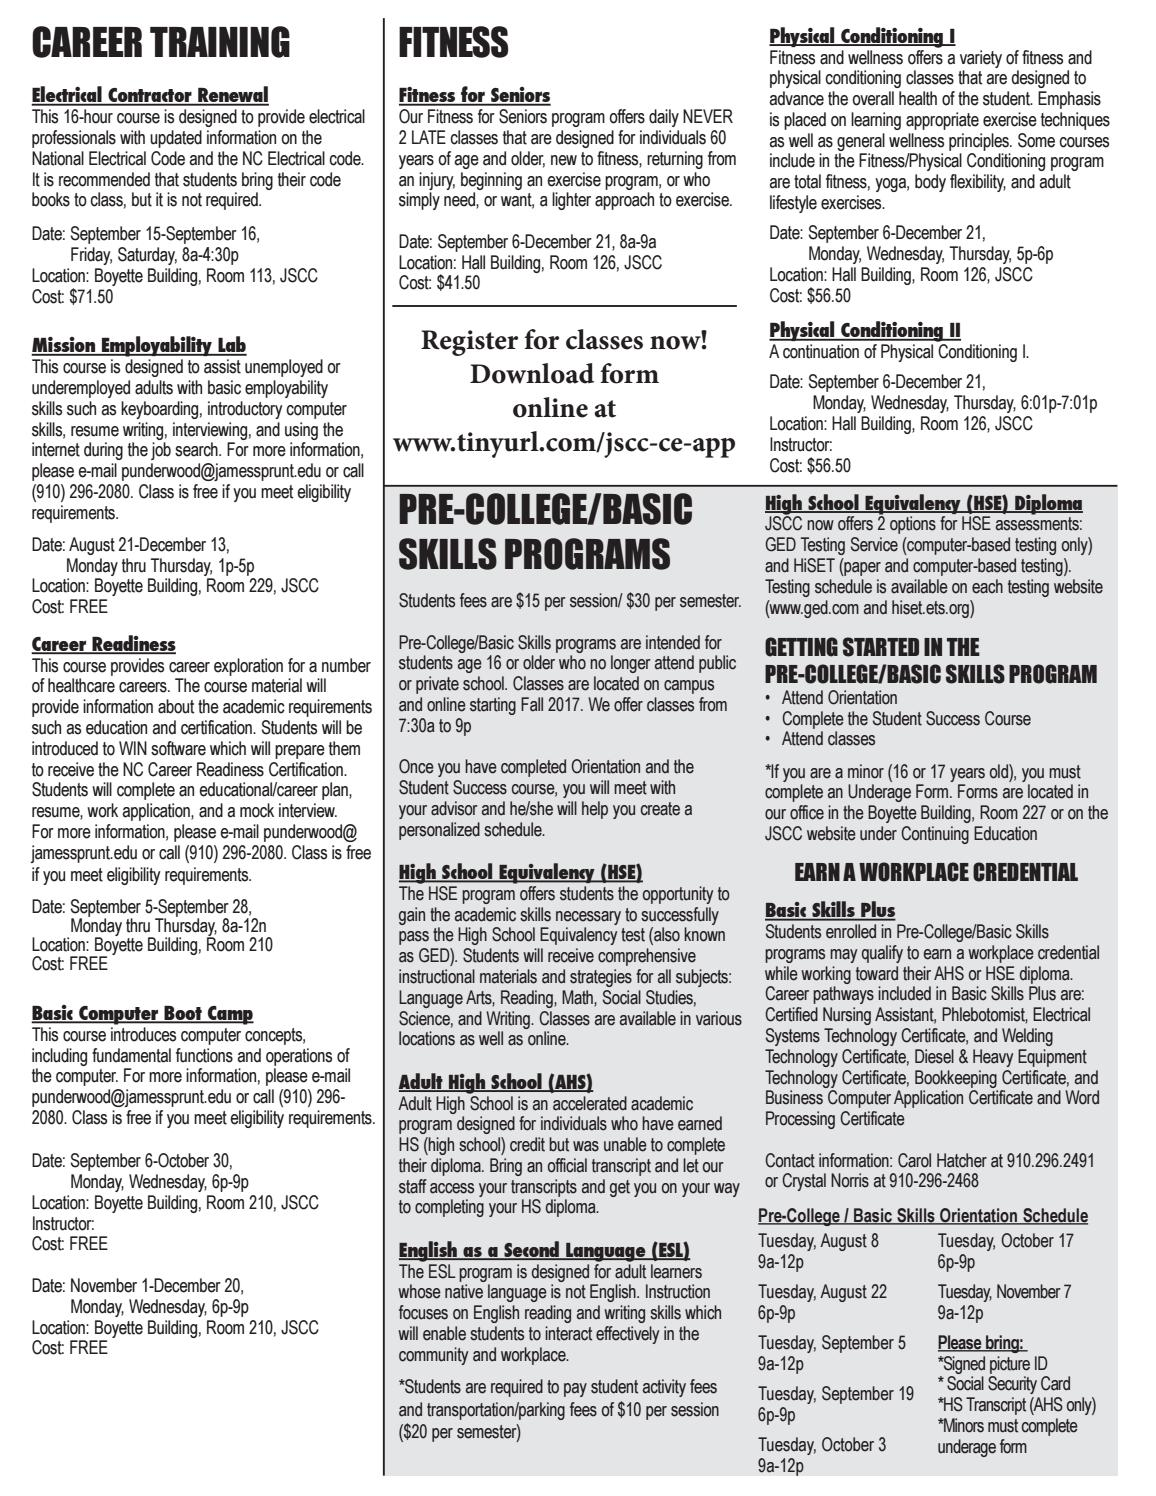 Fall 2017 Continuing Education Schedule for James Sprunt Community College